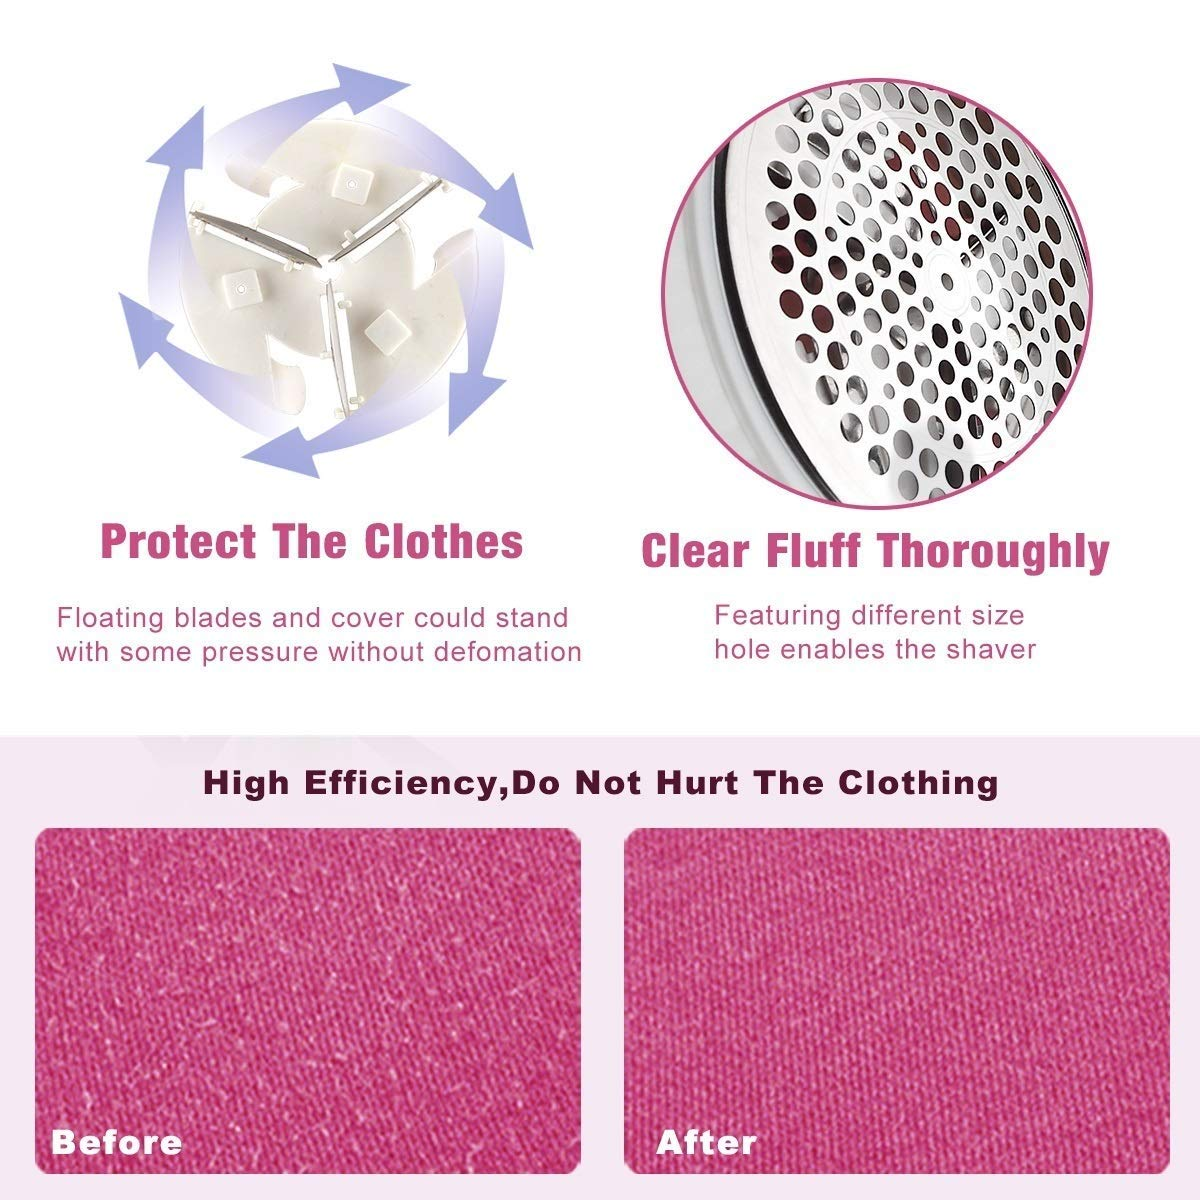 (2018)Fabric Shaver, Rechargeable Lint Fuzz Pill Remover Sweater Pilling Lint Shaver Defuzzer For Clothes Fluff Curtain with USB Cable 2 Replaceable Batteries and Replacement Blade